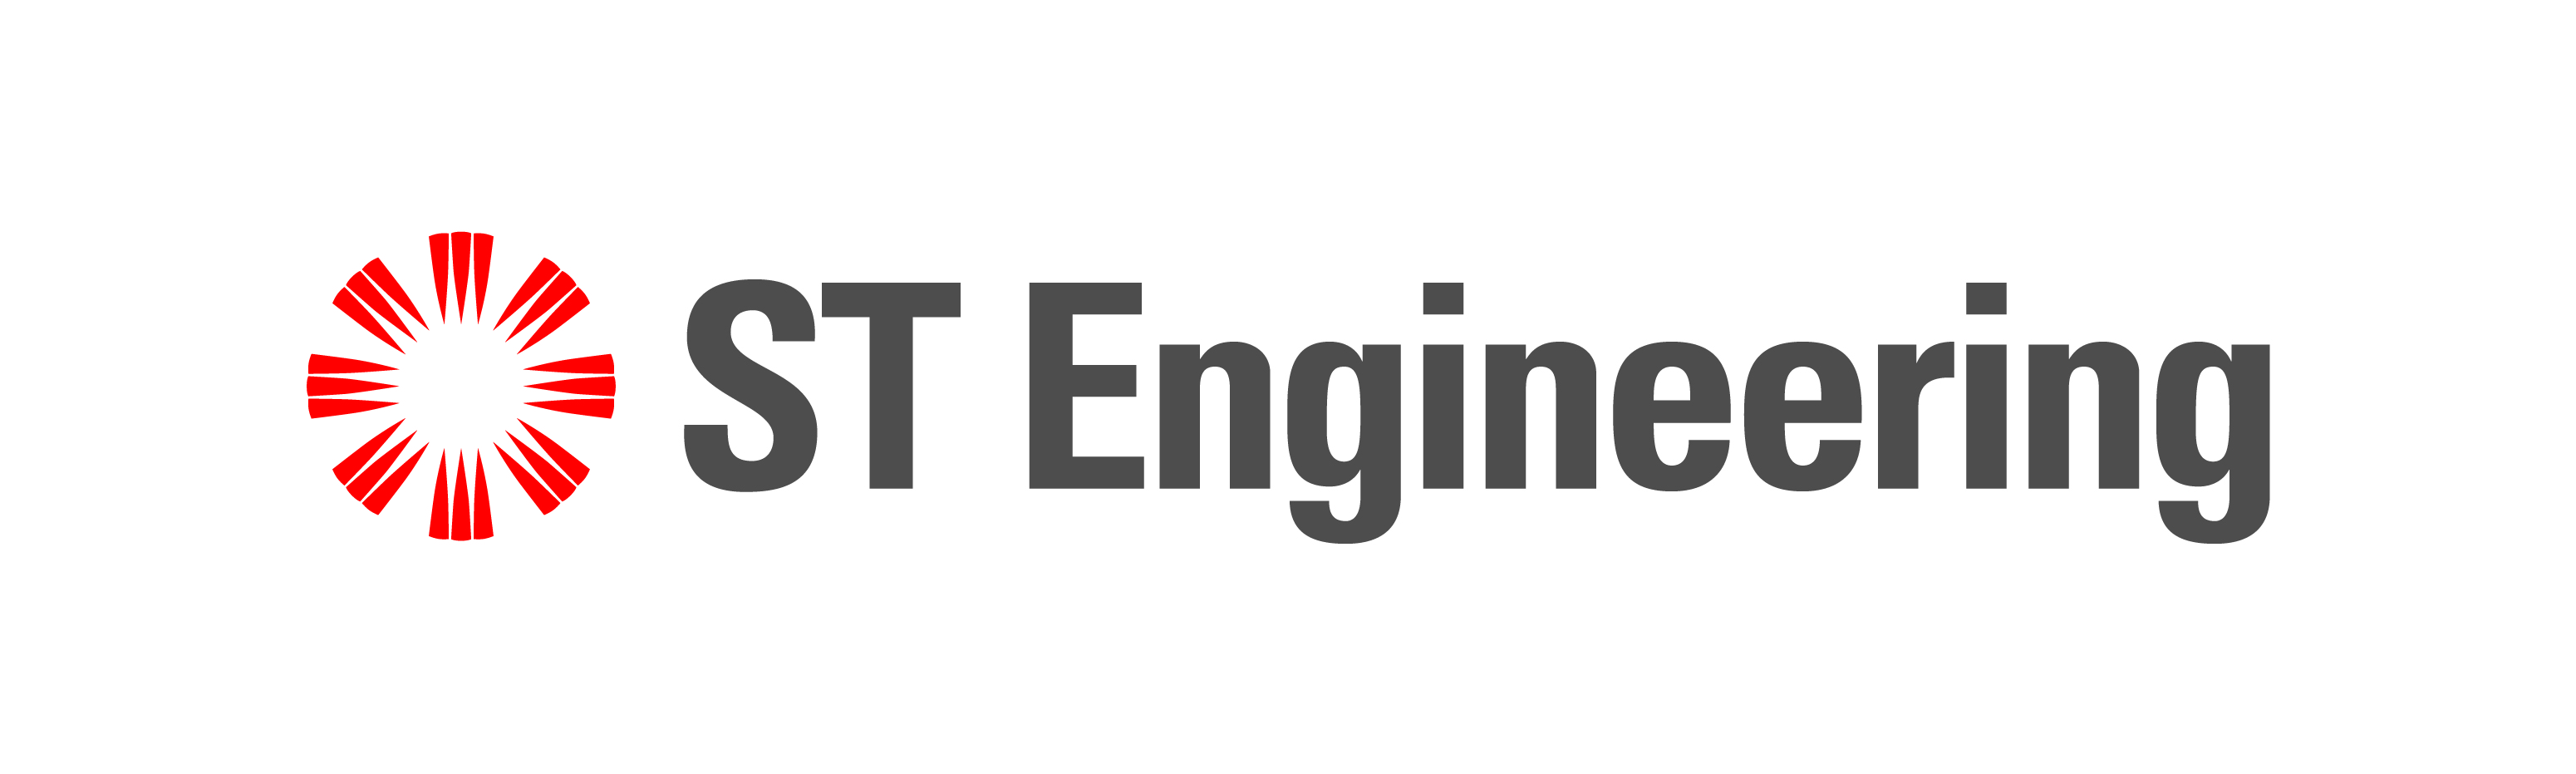 ST Engineering (Powered by Newtec & iDirect)